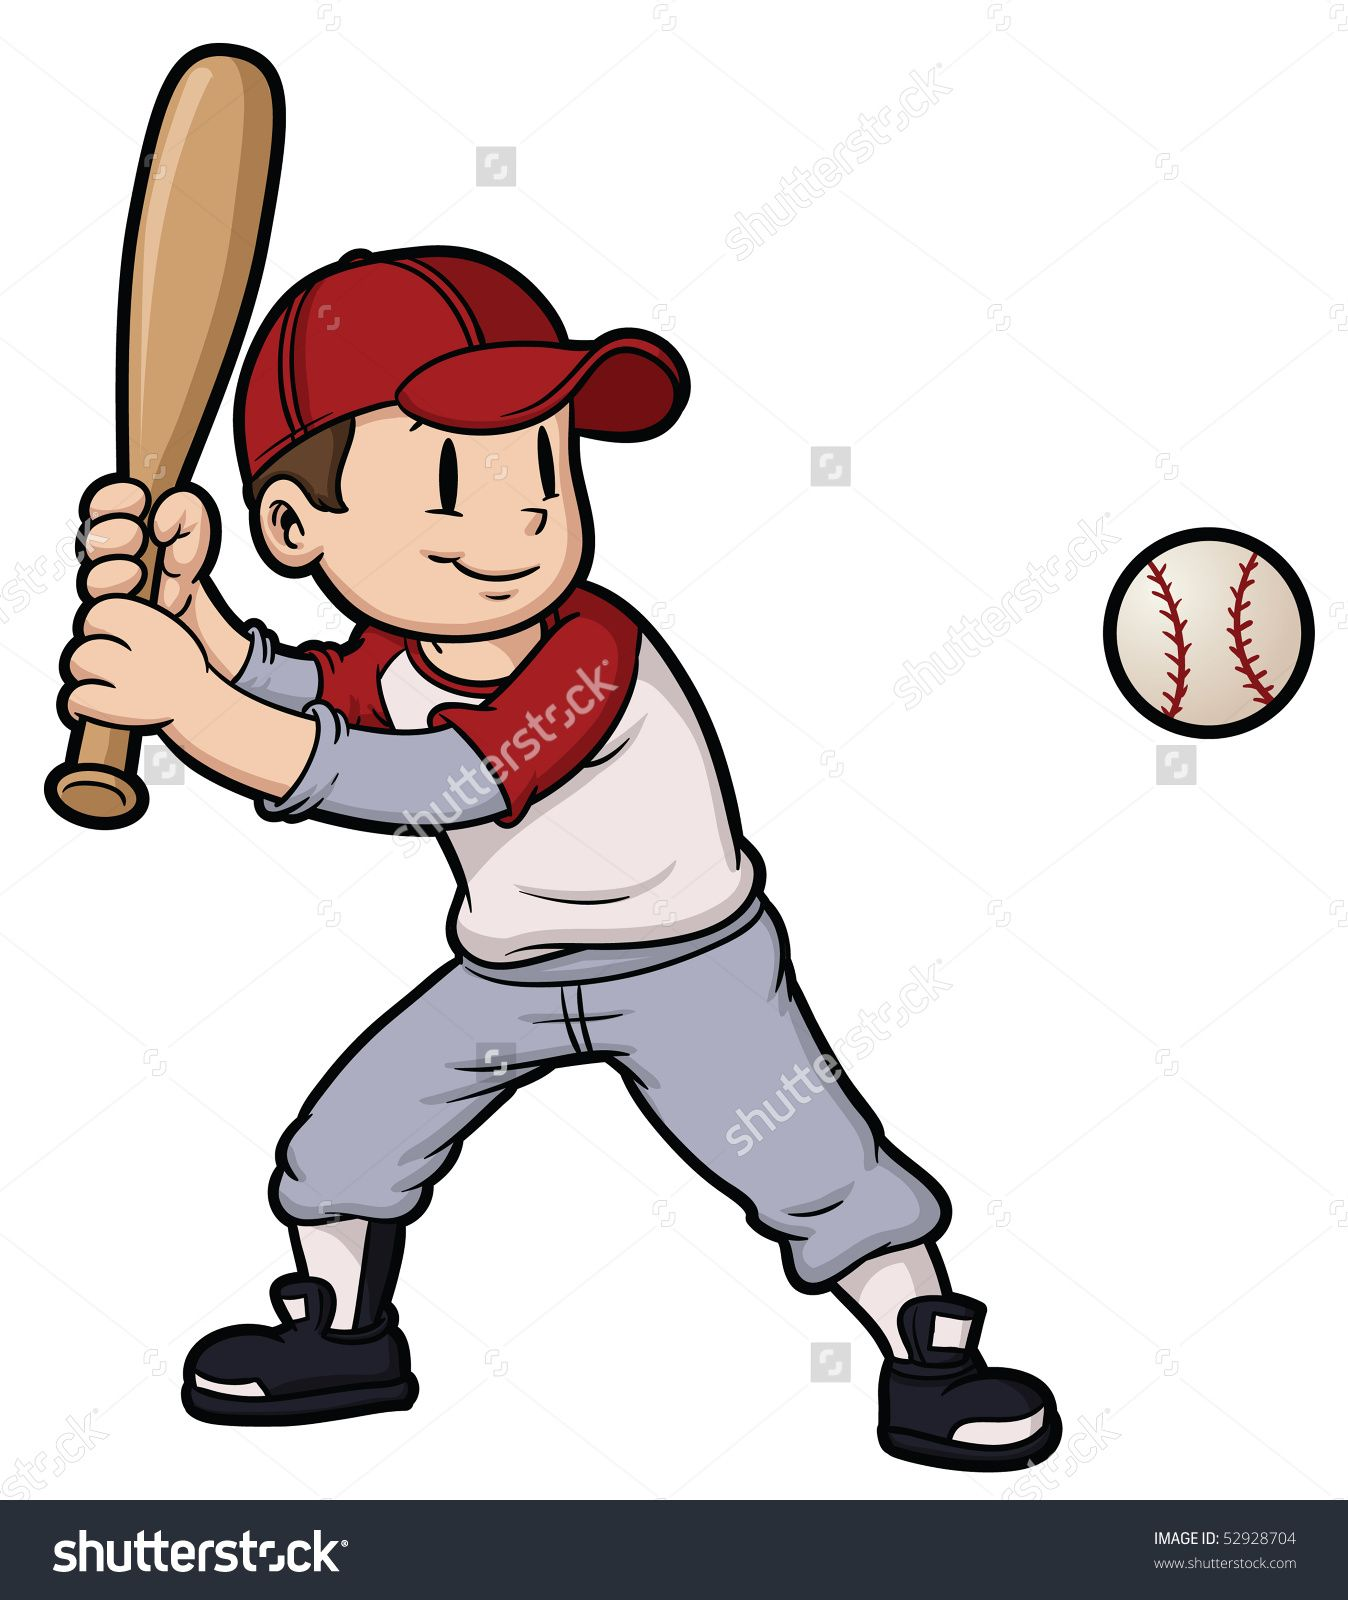 Stock Vector Cartoon Boy Playing Baseball Baseball And Character On Separate Layers For Easy Editing 52928704 Jpg 1348 1600 Cartoon Boy Baseball Cartoon